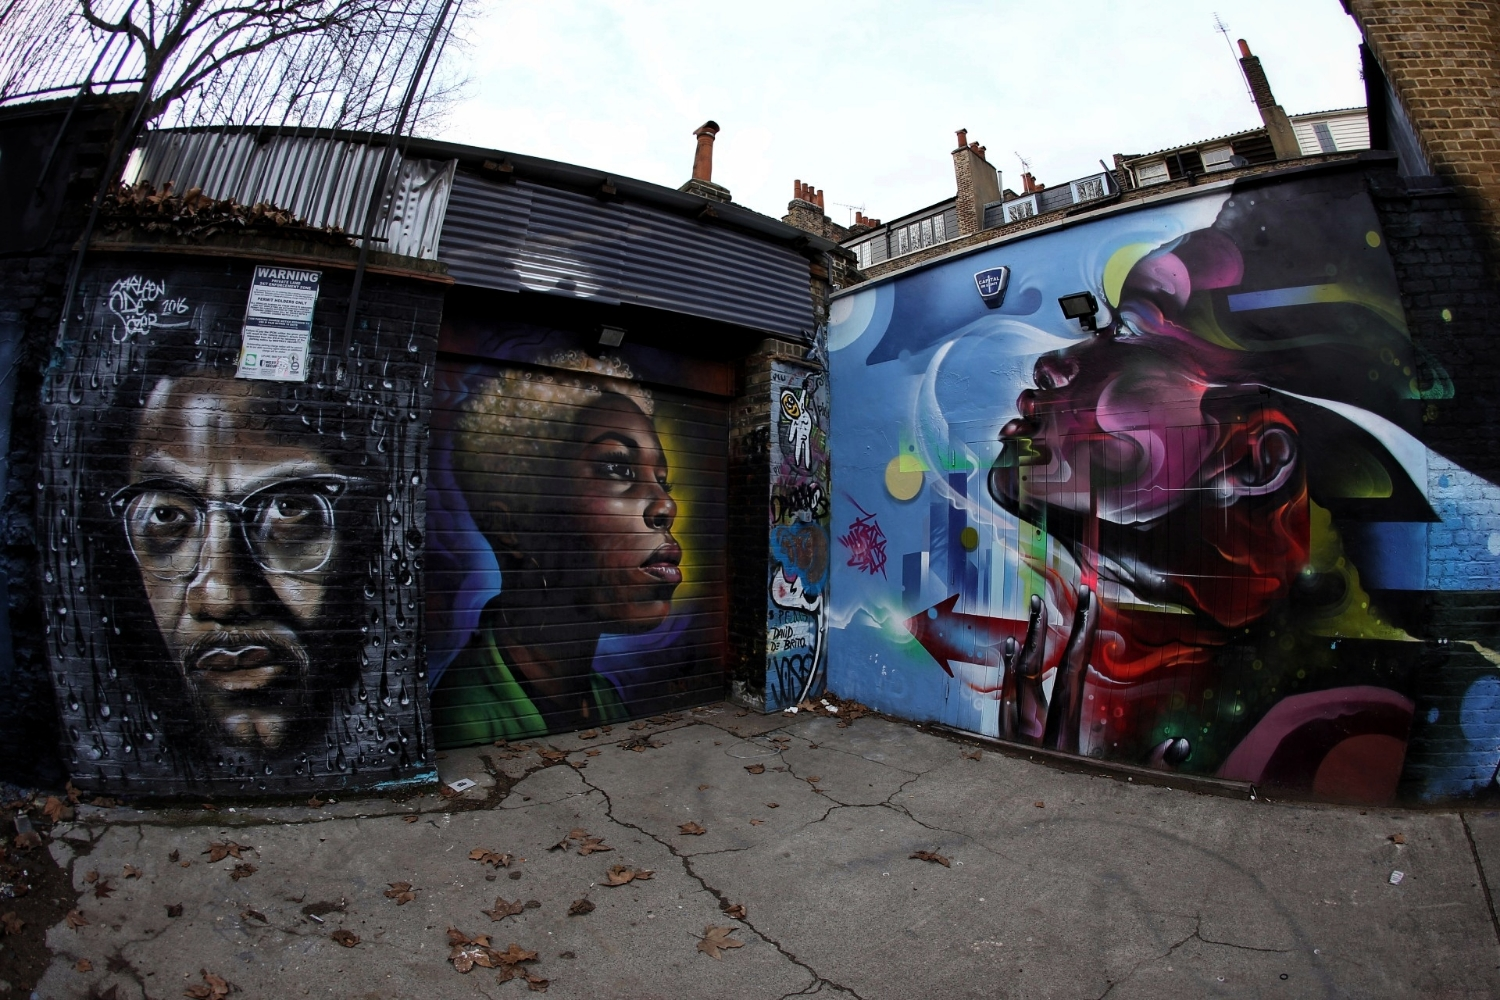 London back alley. Had to avoid stepping on hundreds of empty phials of helium or whatever the kids are doing these days...